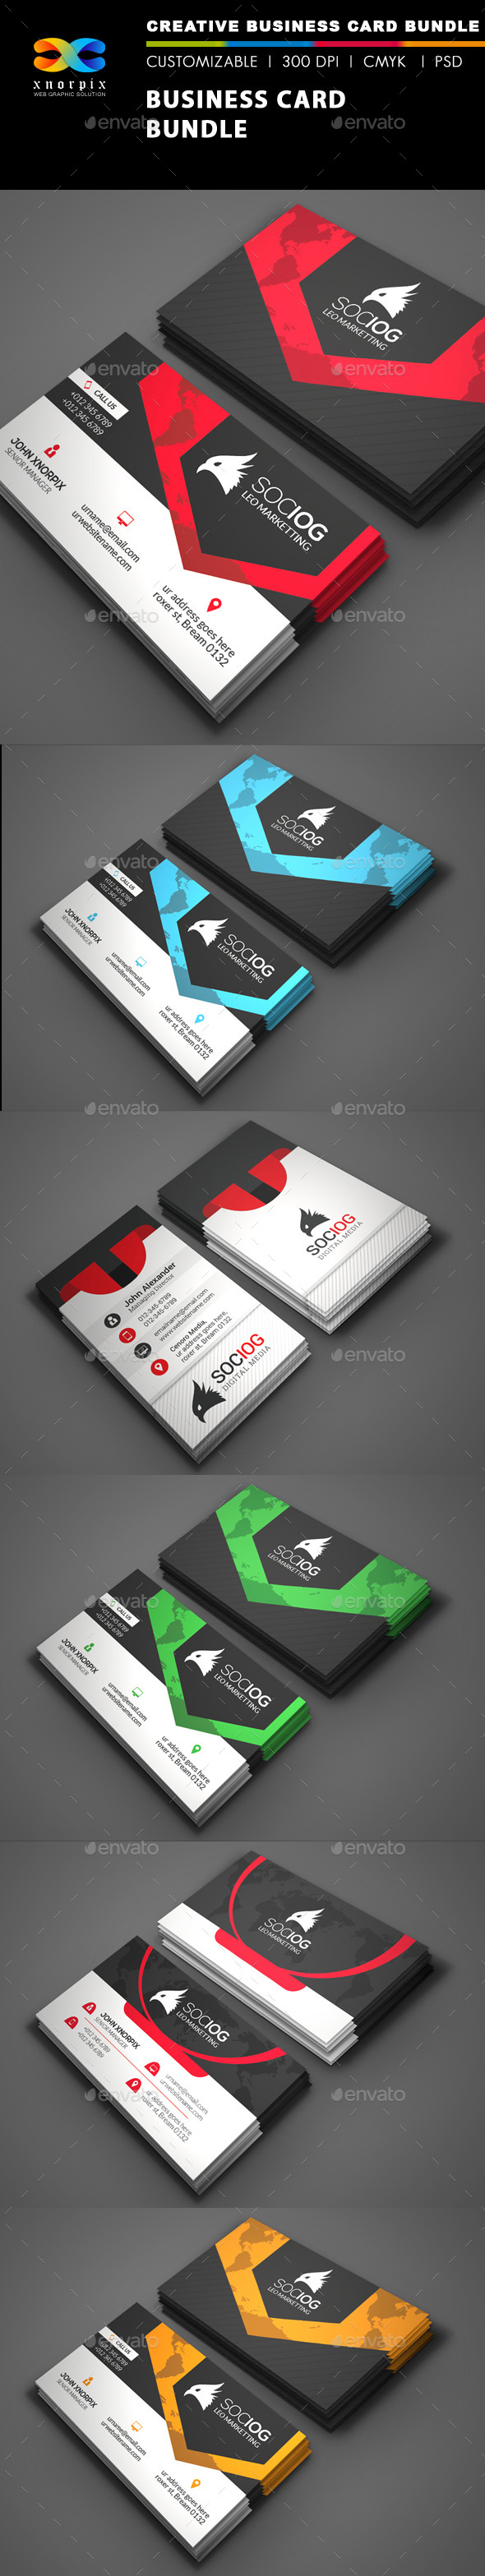 GraphicRiver Business Card Bundle 3 in 1-Vol 42 8798344